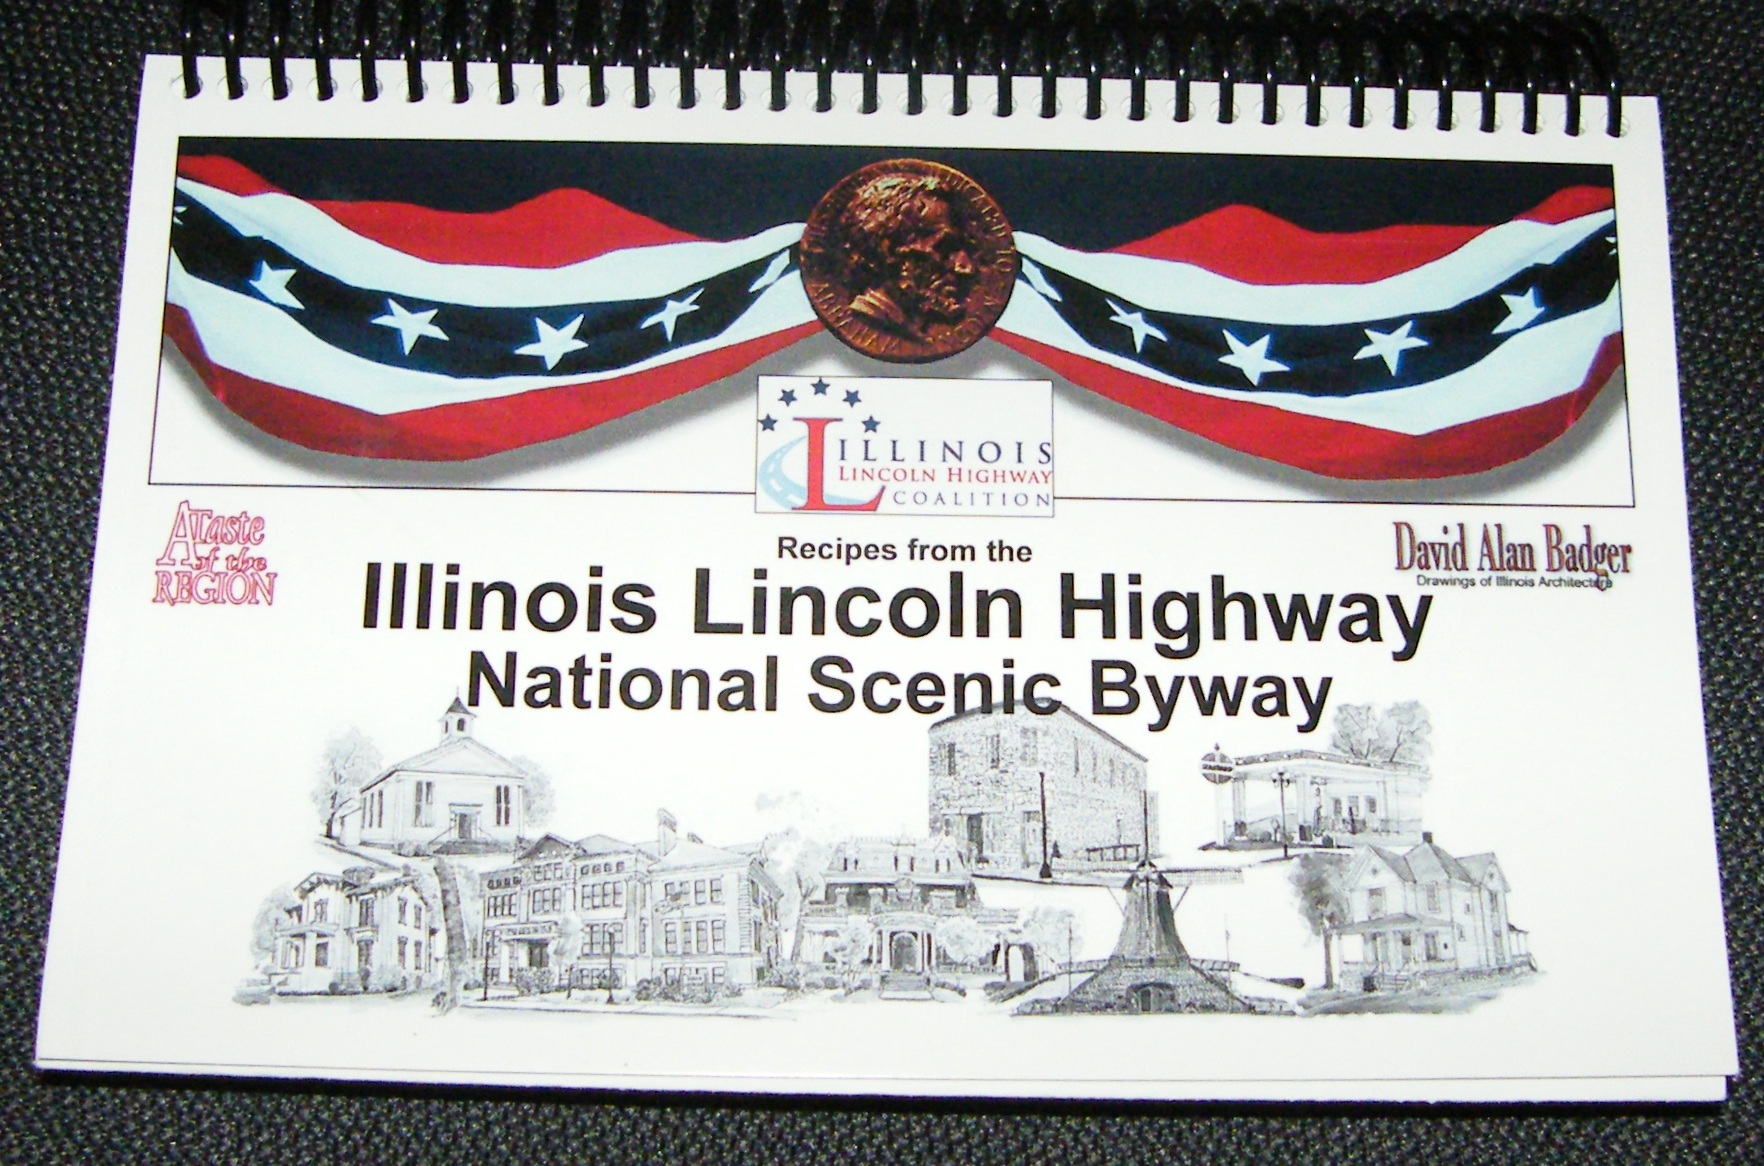 Illinois Lincoln Highway Cookbook